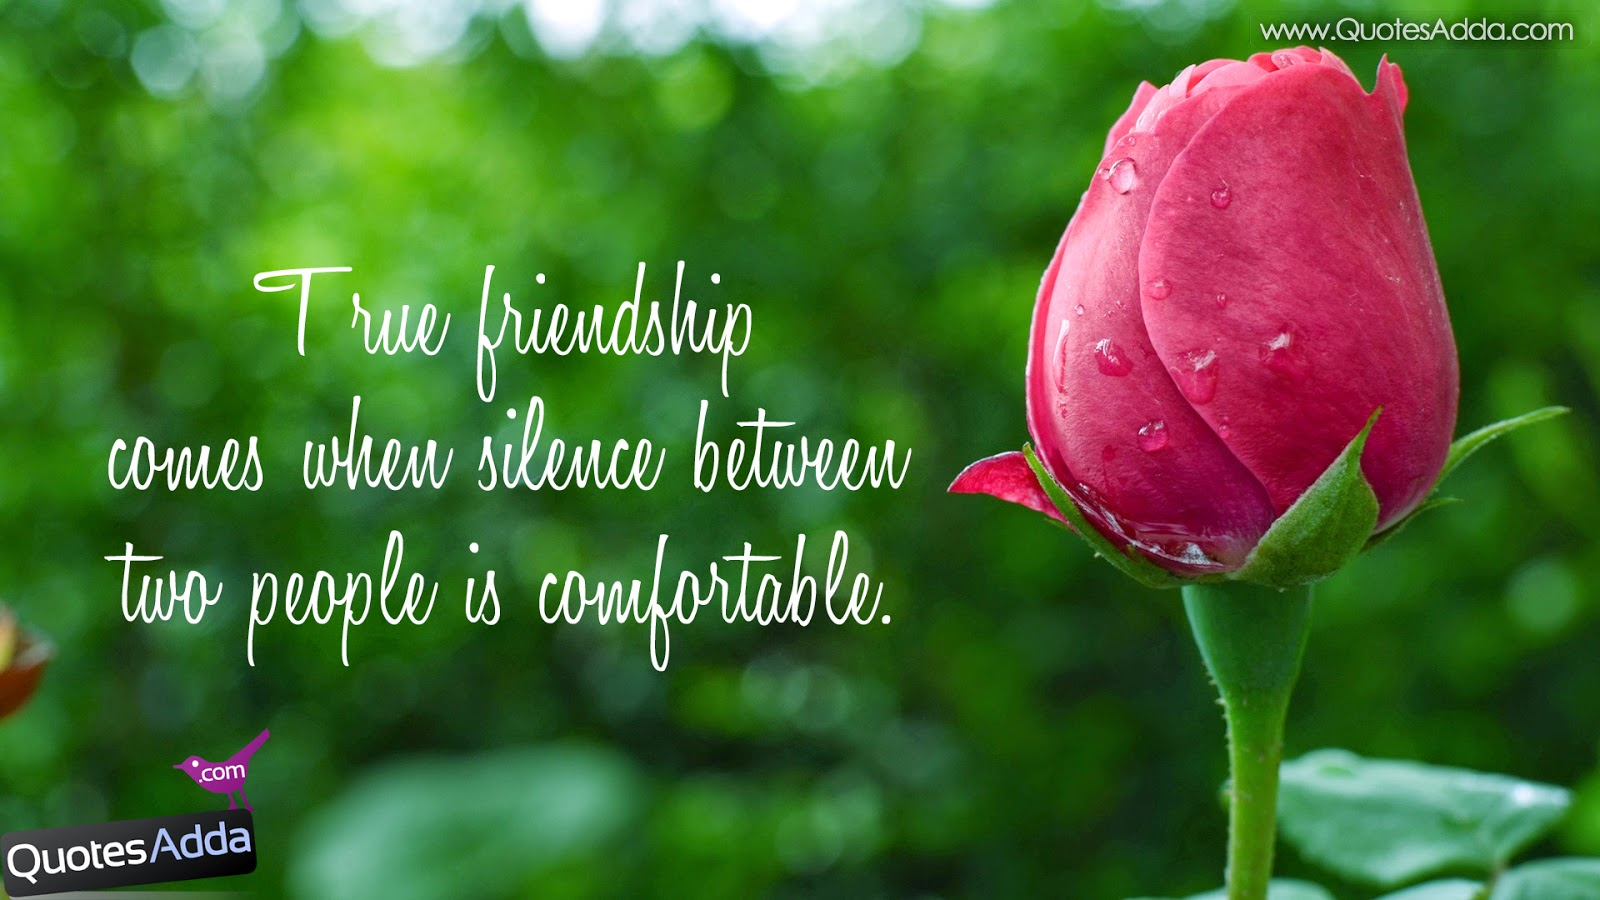 Quotes About Friendship Wallpapers Cute With Images 1600X900